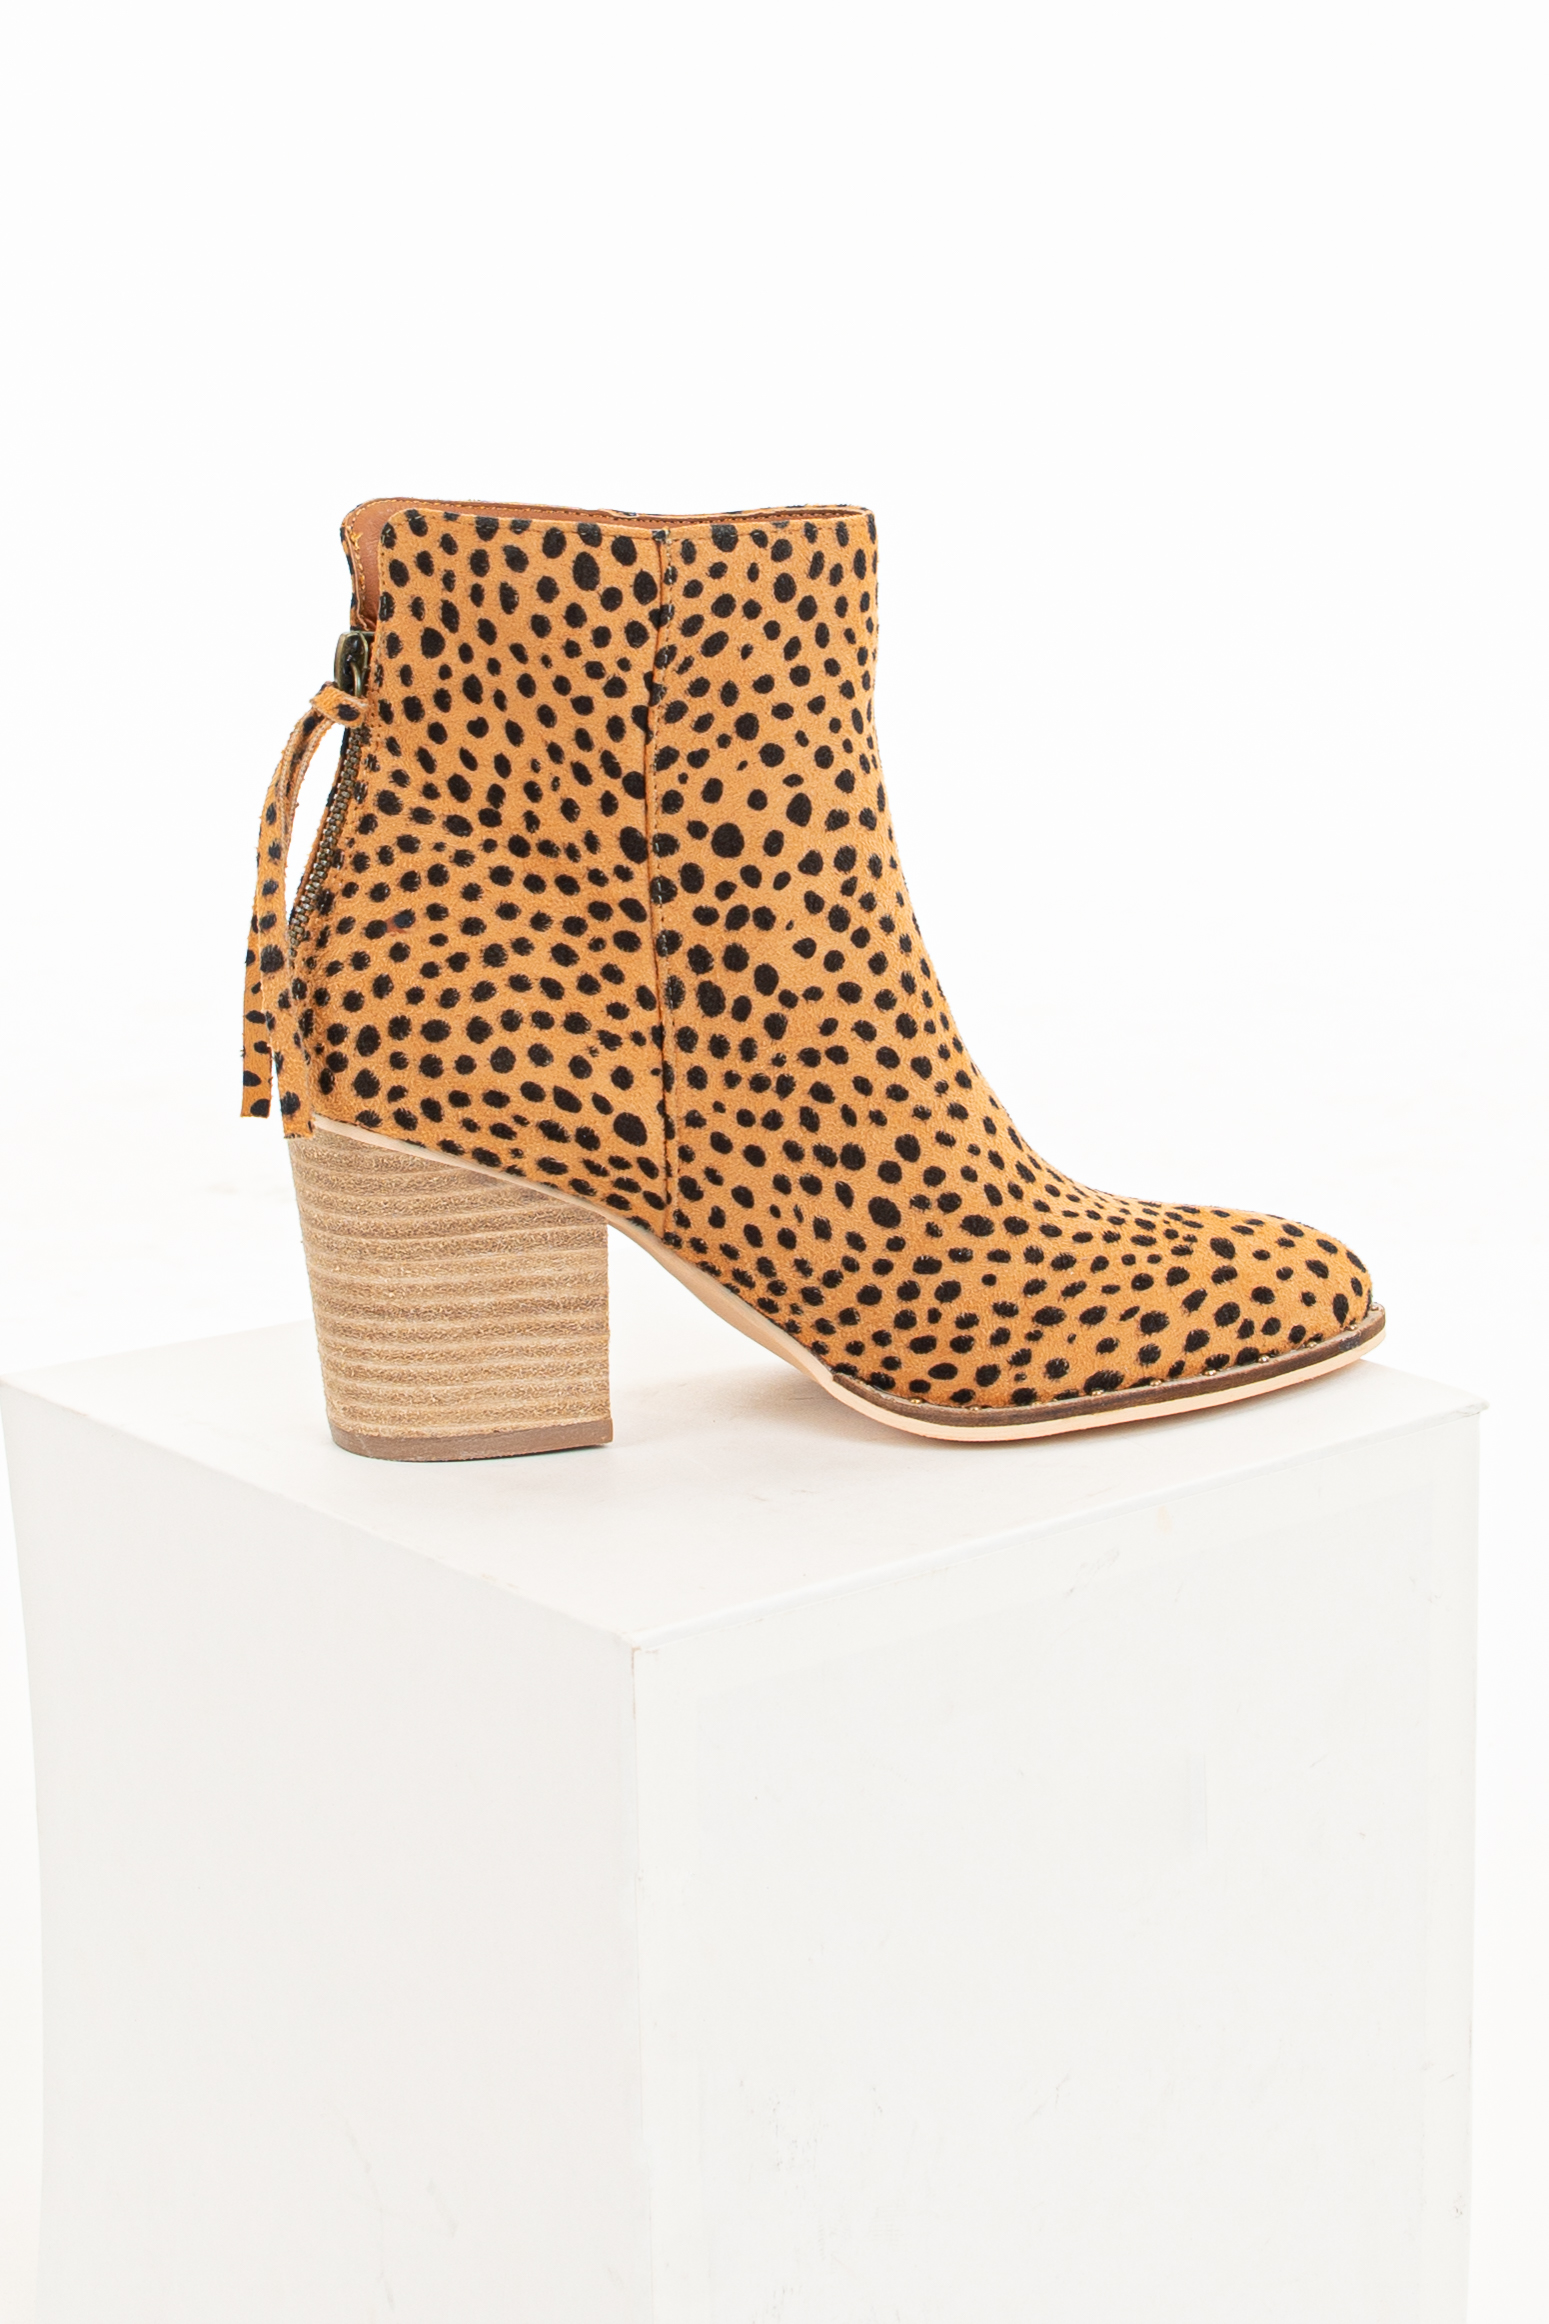 Rich Sand Faux Suede Cheetah Print Booties with Stud Detail